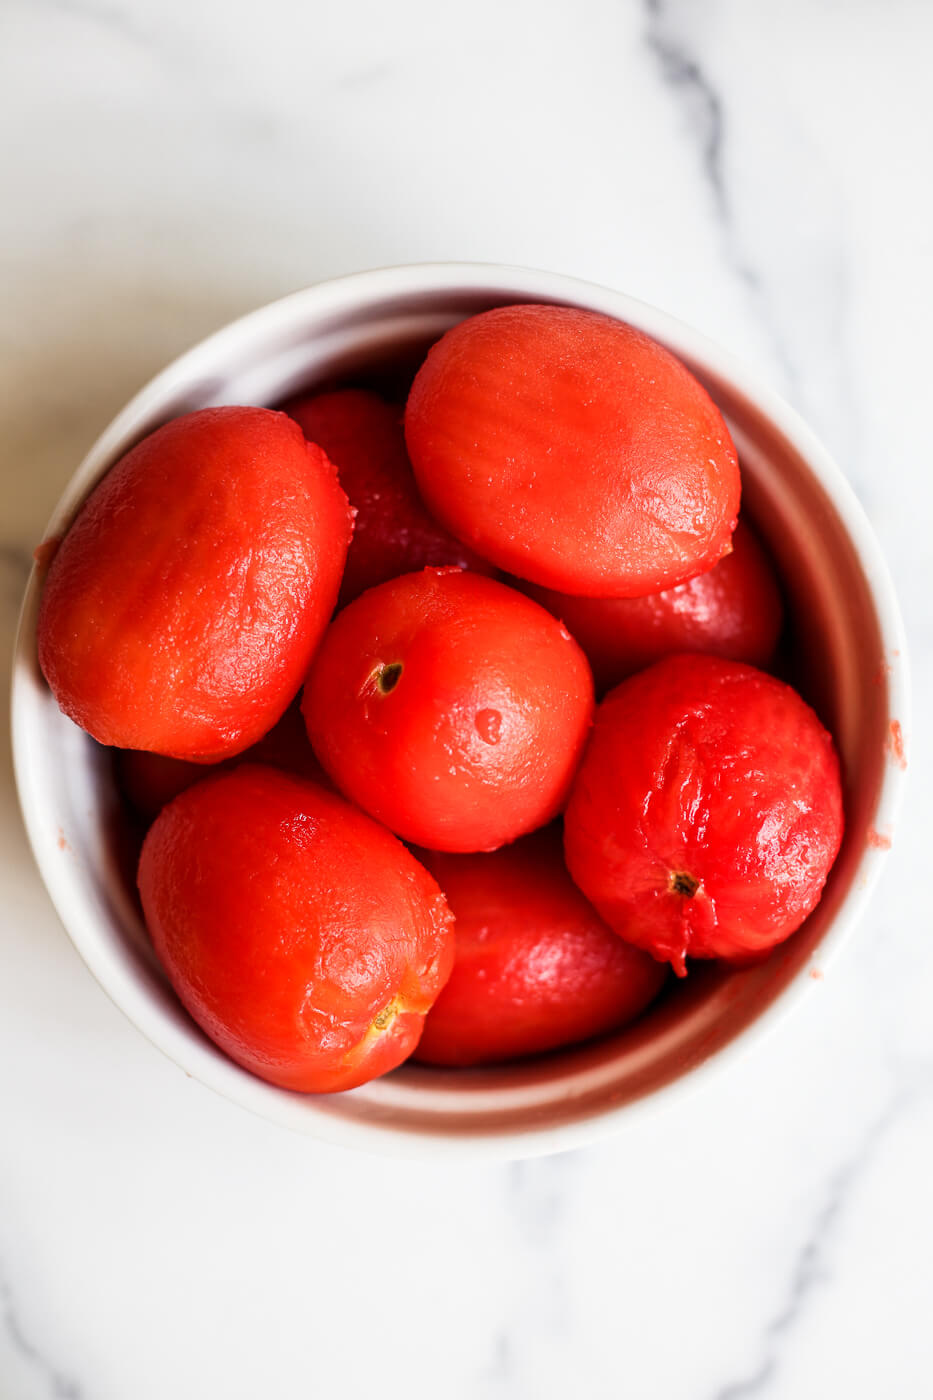 An overhead photo of a bowl of blanched peeled tomatoes on a marble countertop.